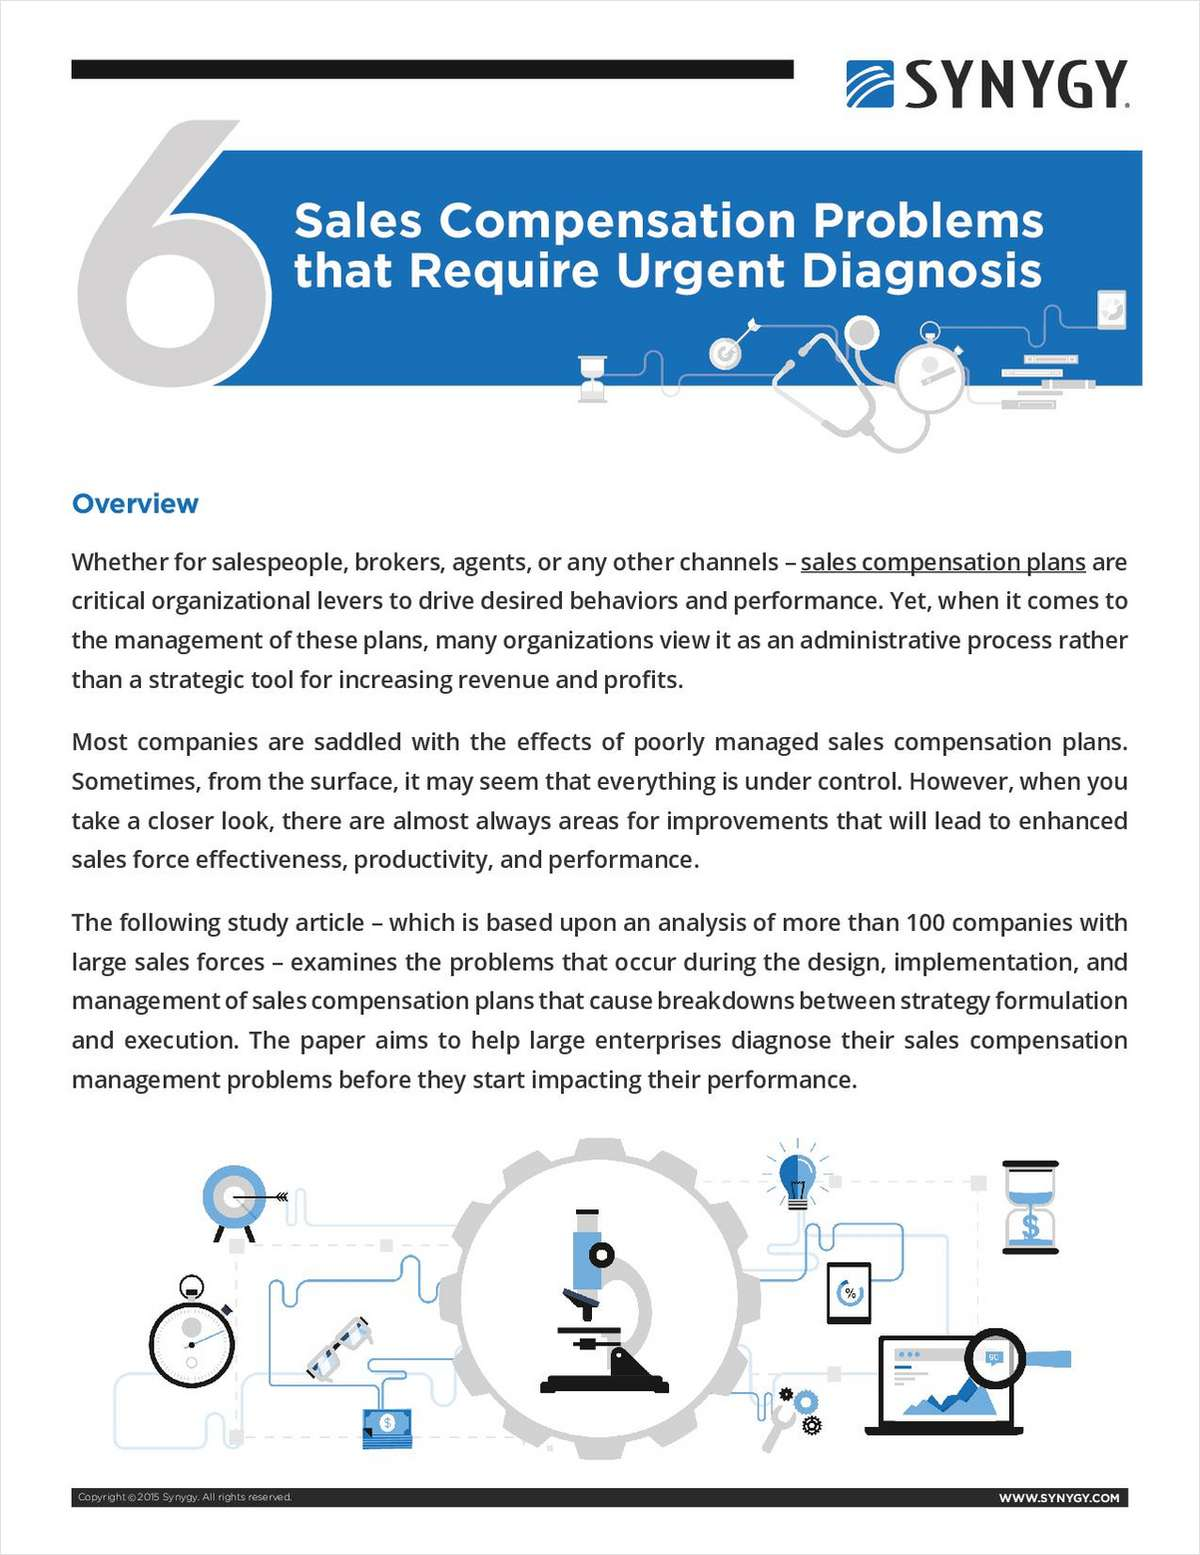 6 Sales Compensation Problems that Require Urgent Diagnosis